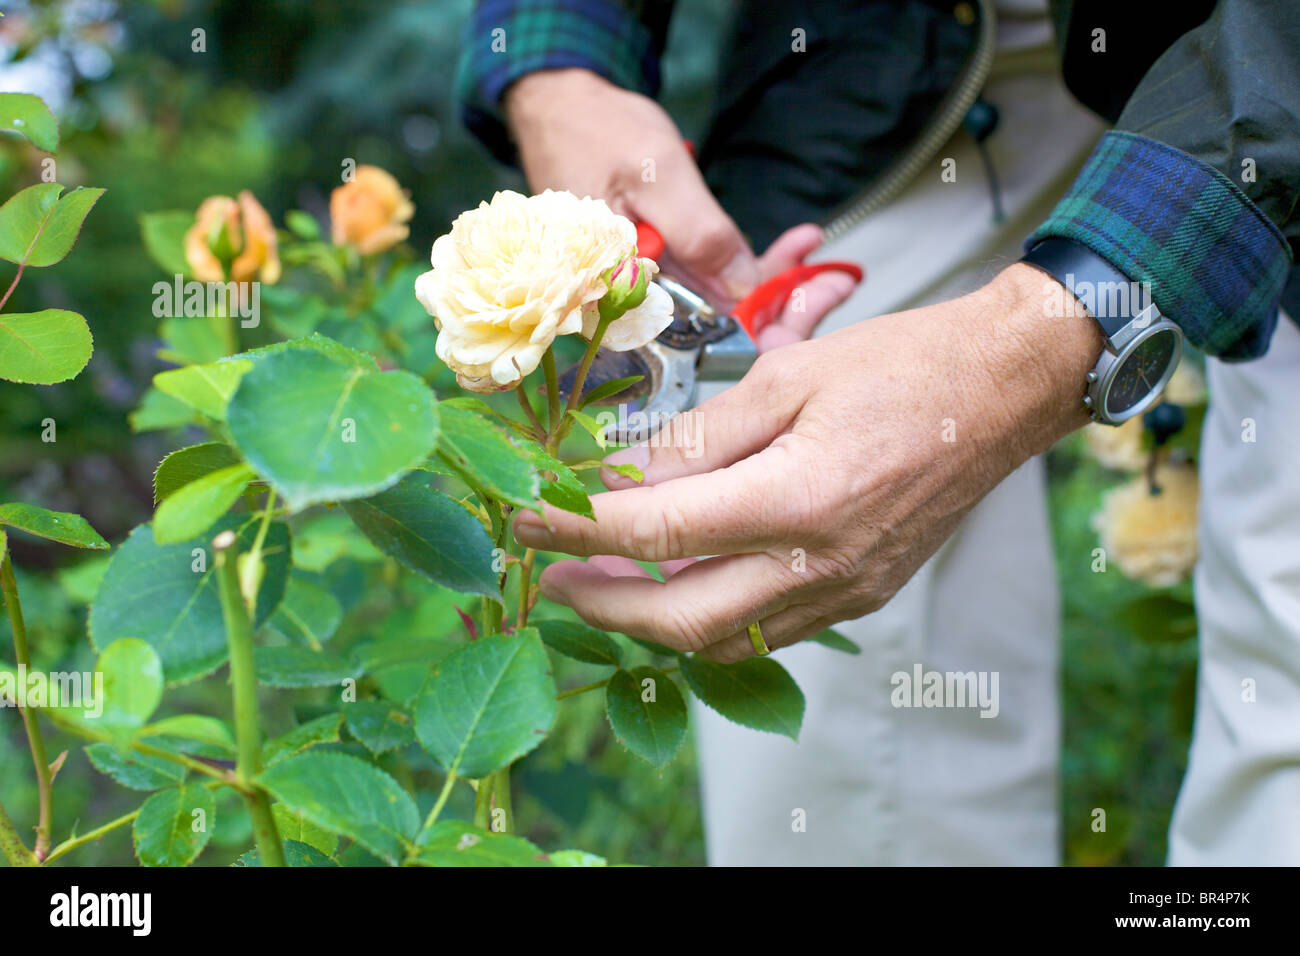 Man Trimming Roses In Garden Close Up Stock Photo 31452727 Alamy